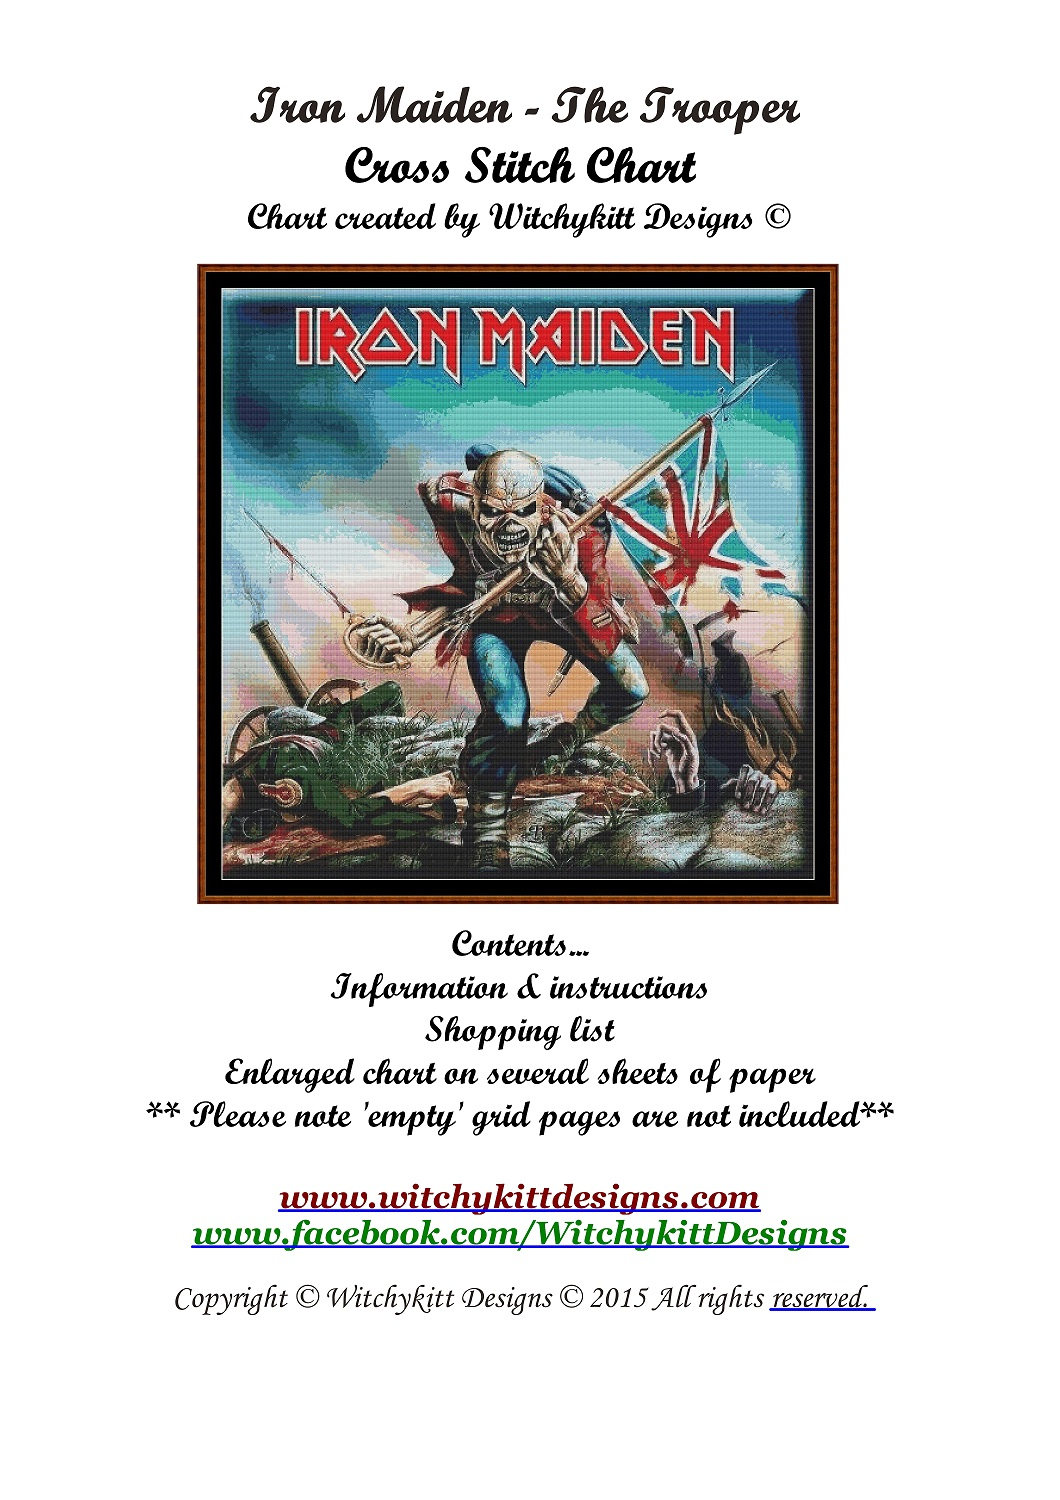 Iron Maiden - The Trooper Cross Stitch